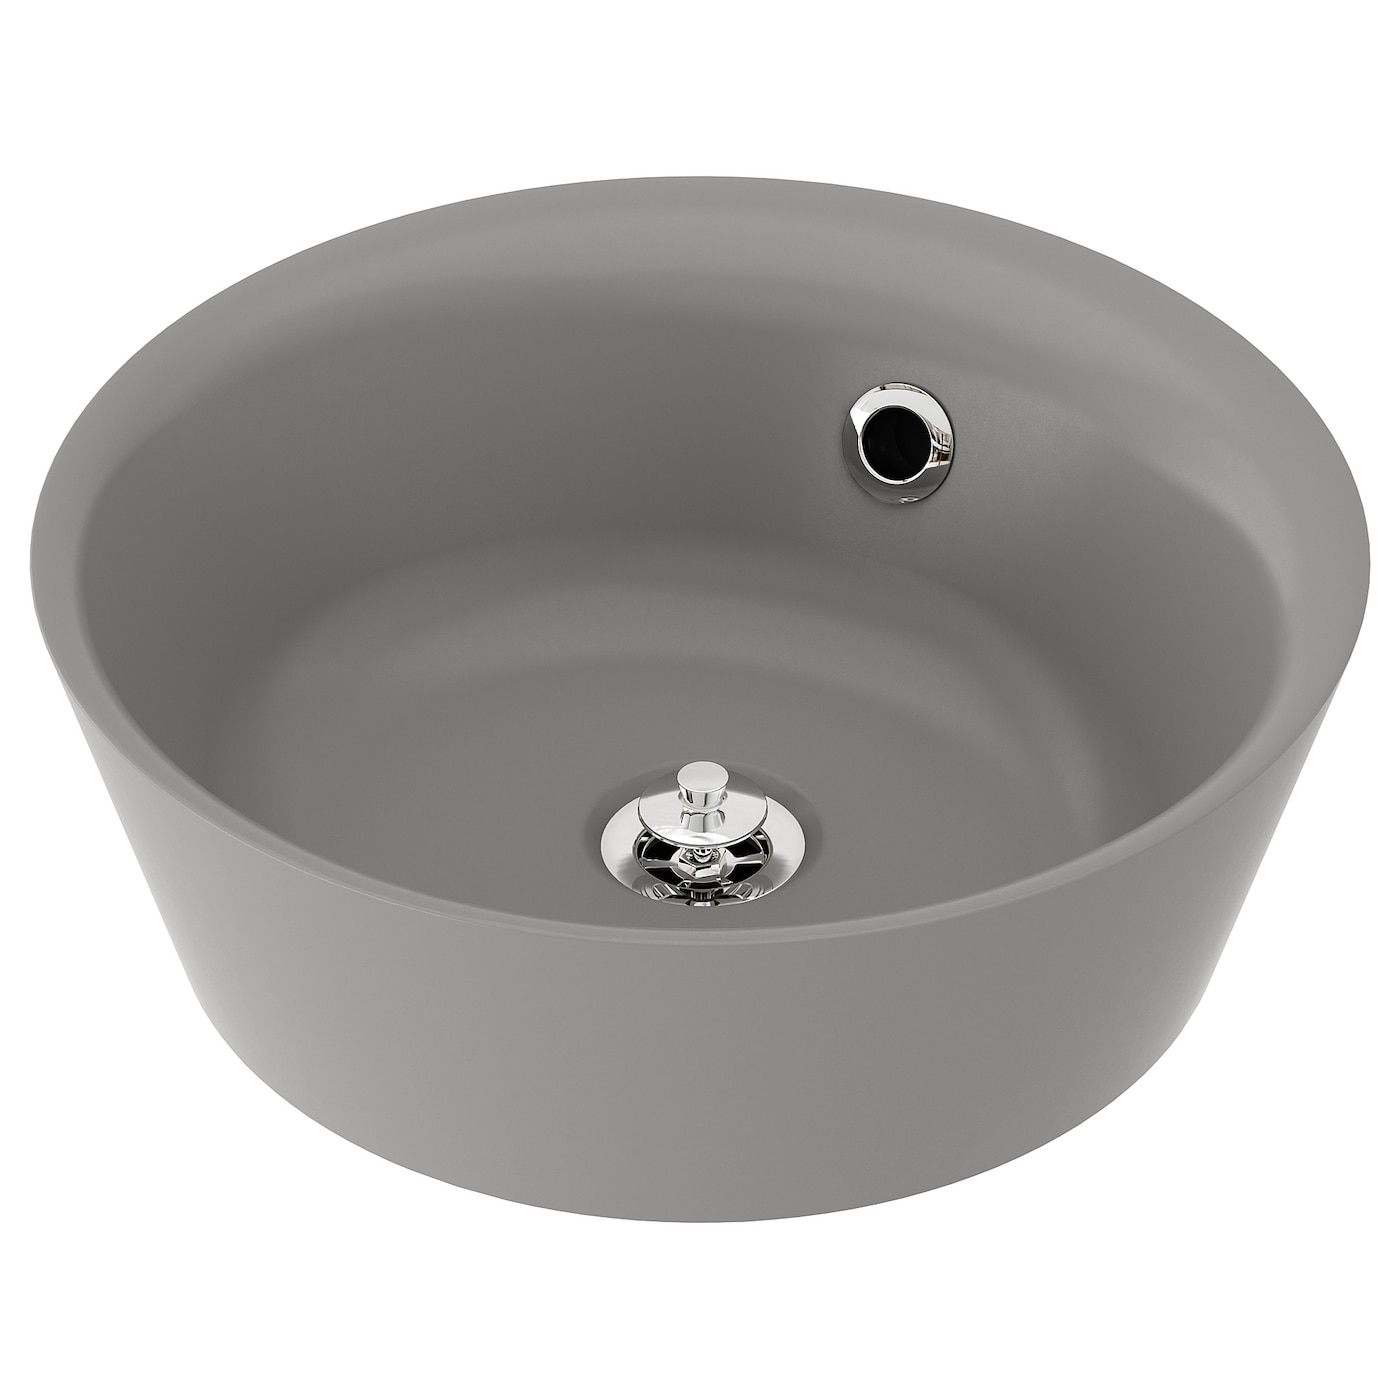 IKEA KATTEVIK countertop wash-basin Unique water trap design gives room for a full sized drawer.